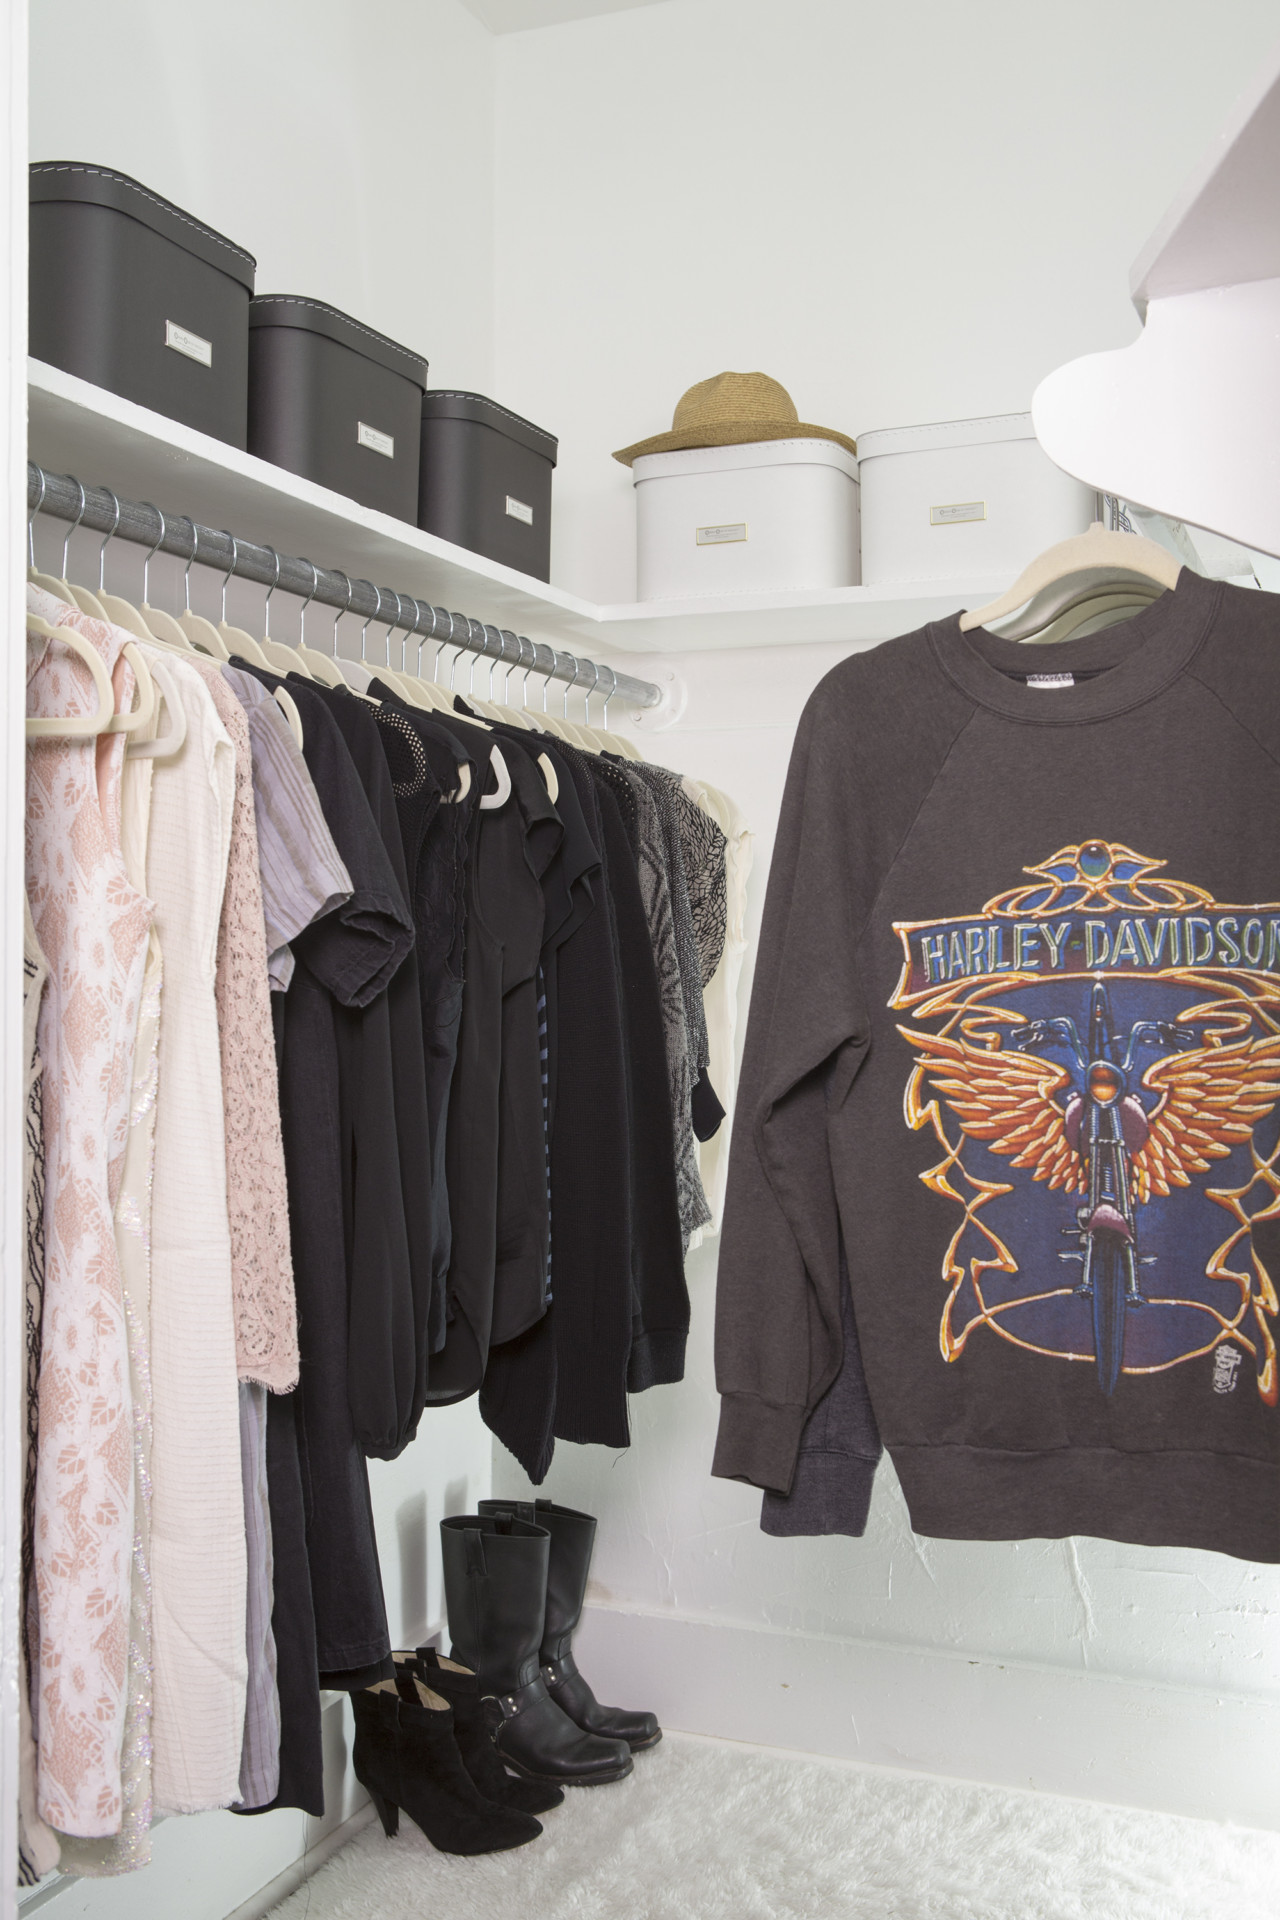 Organize your closet with storage boxes and more. Check it out!